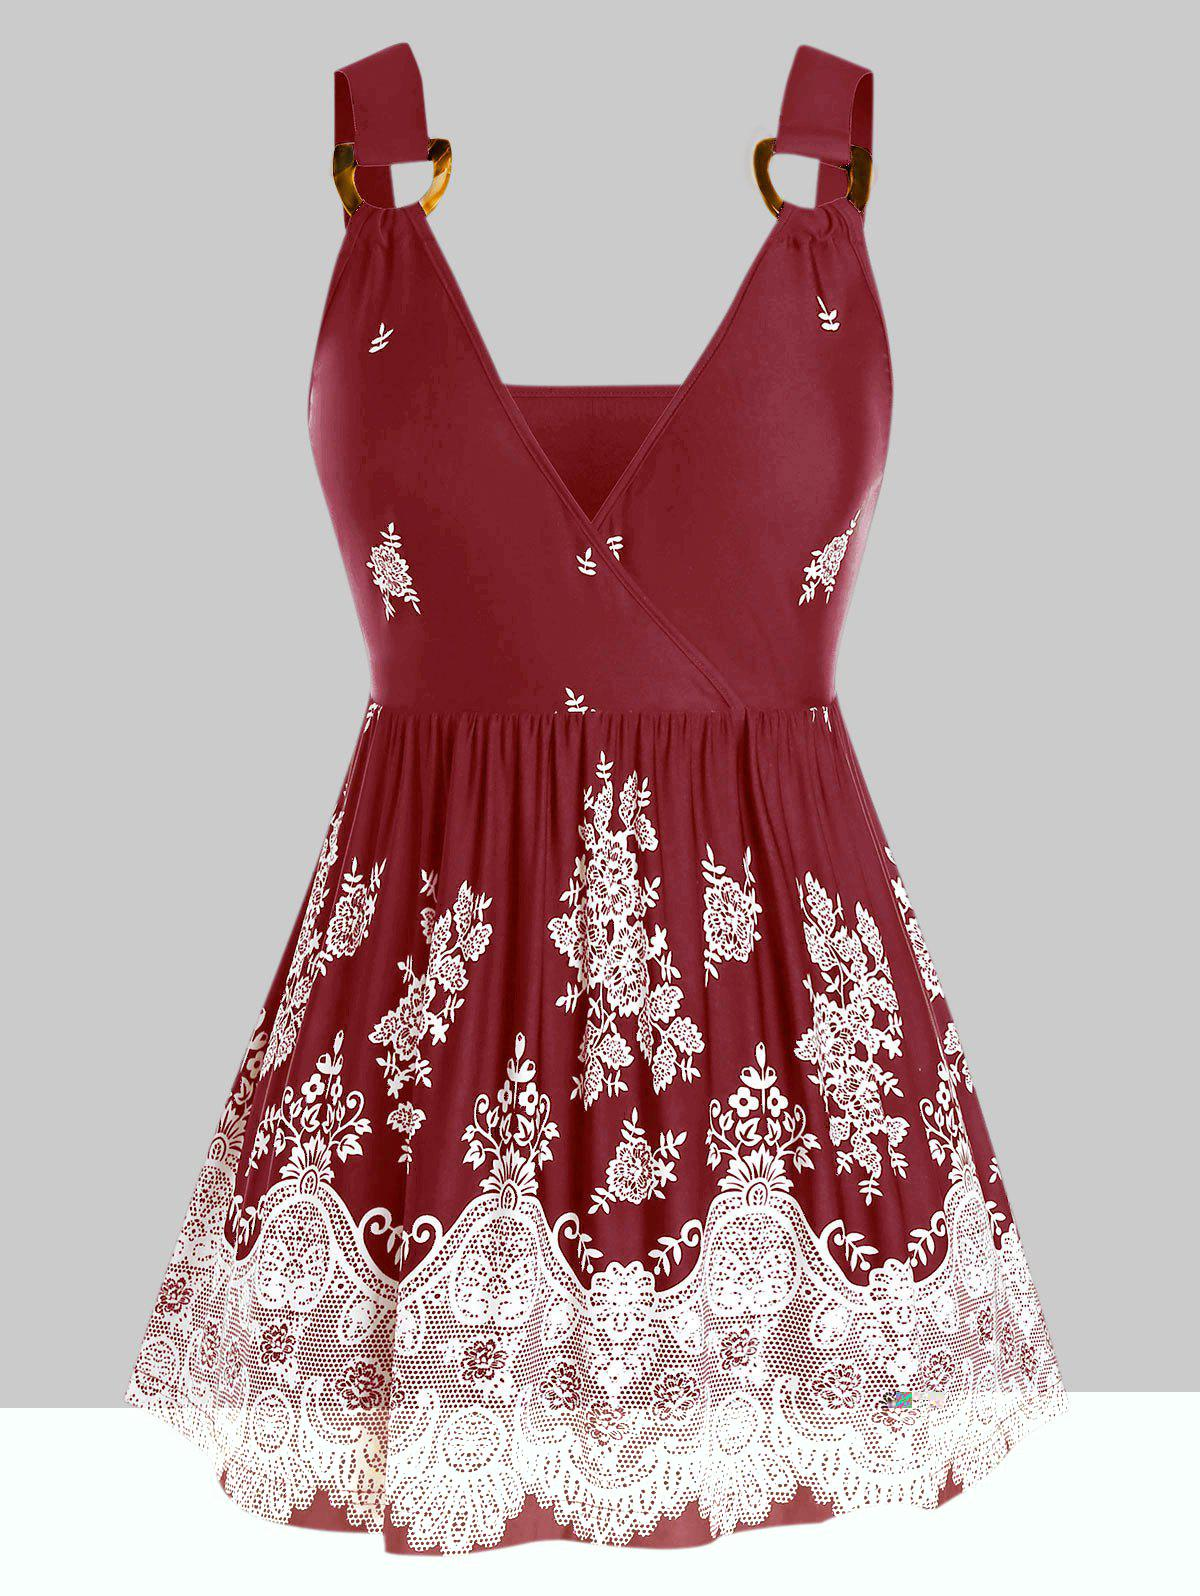 Plus Size Flower Print D-ring Skirted Cami Tank Top - RED WINE 5X